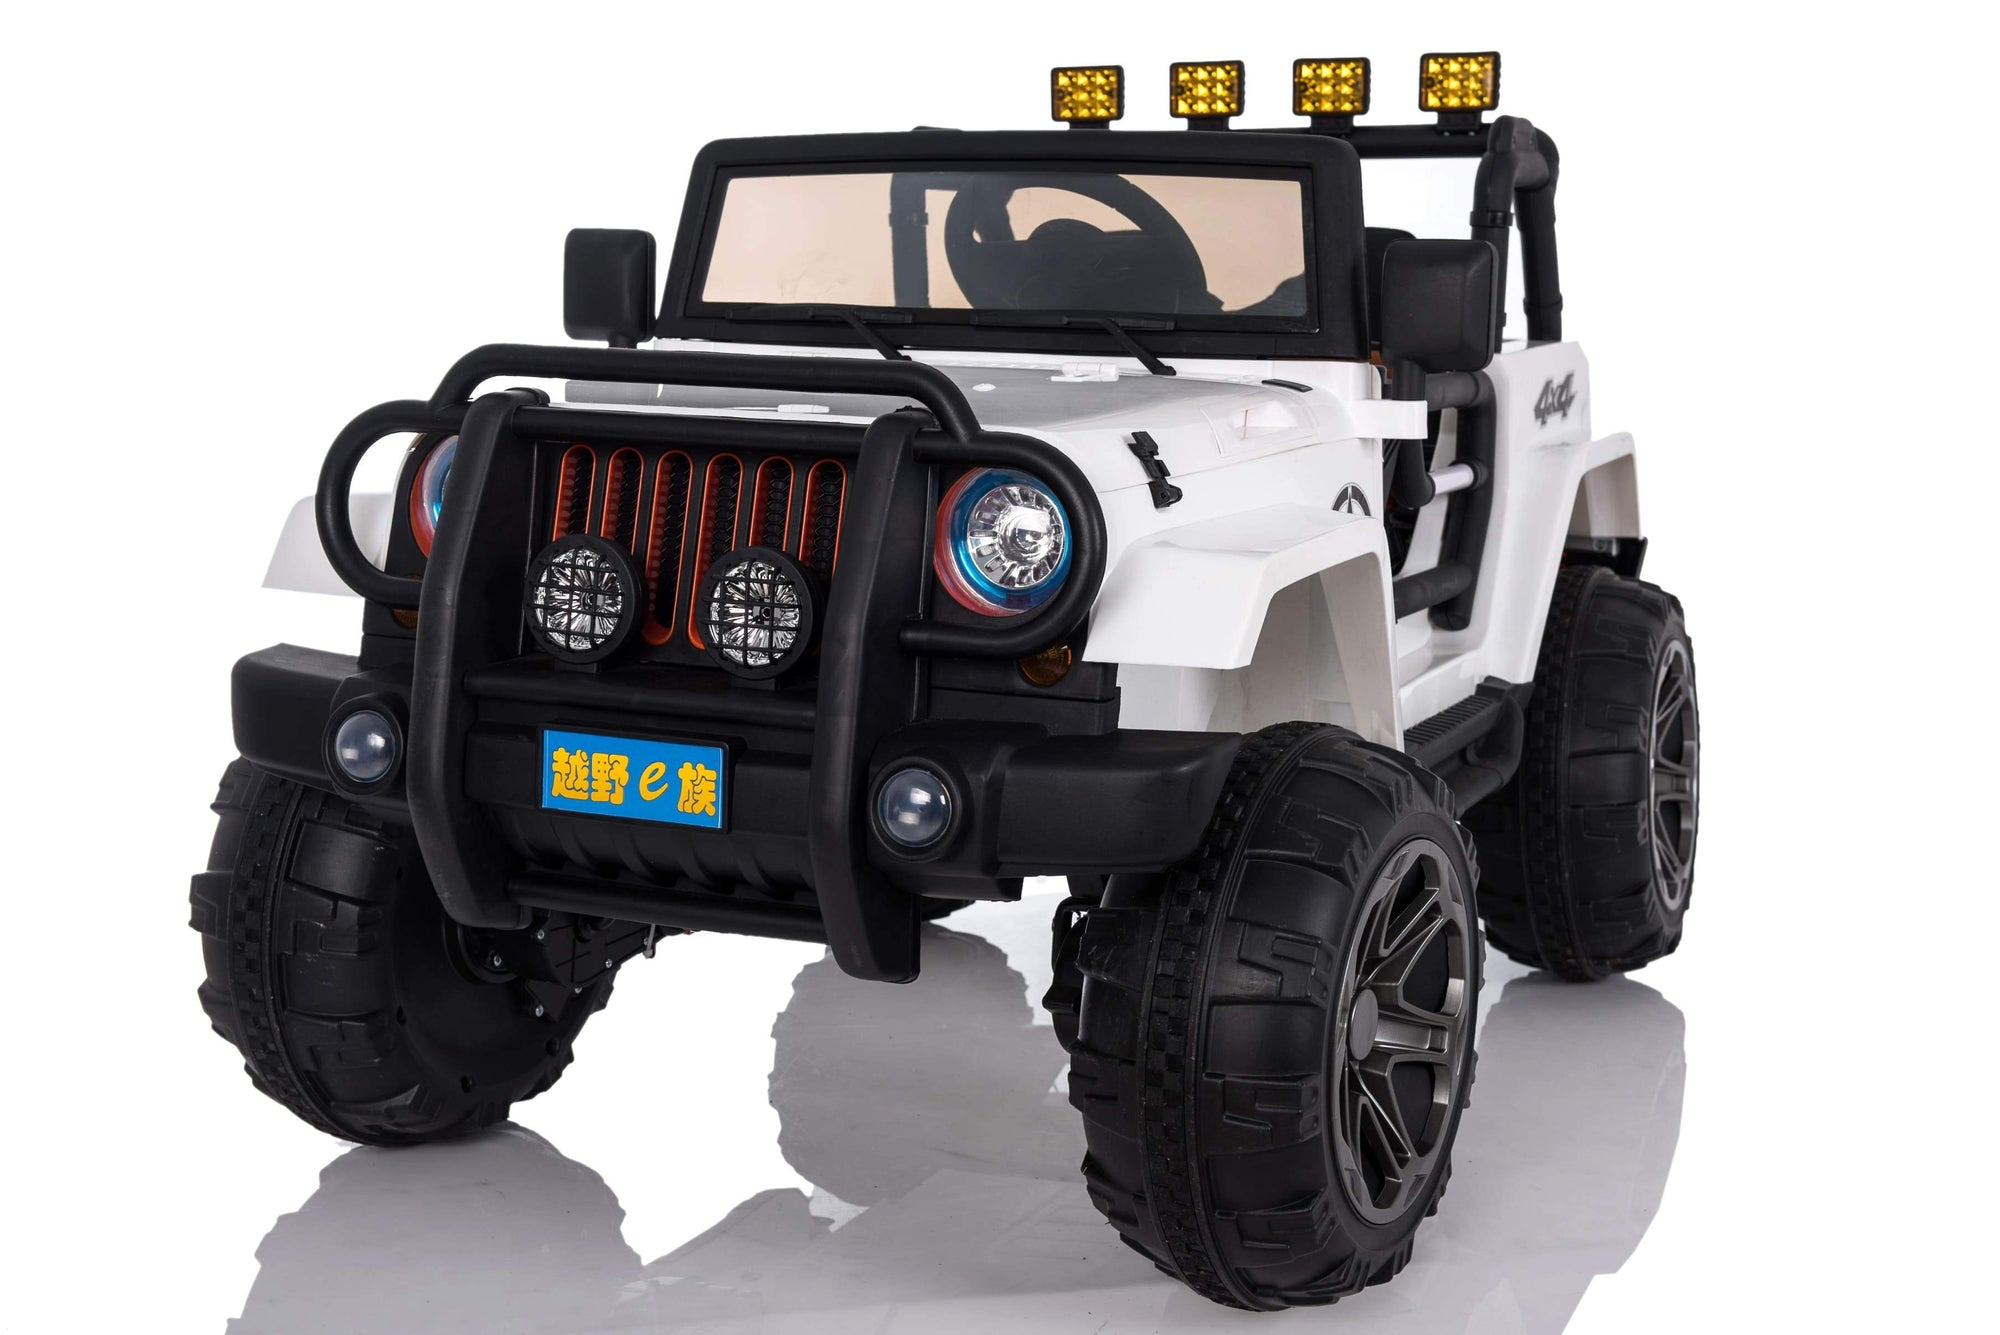 Jeep Wrangler Inspired 12V Ride-On Kids Car | White Cars & SUVs Mini Motos